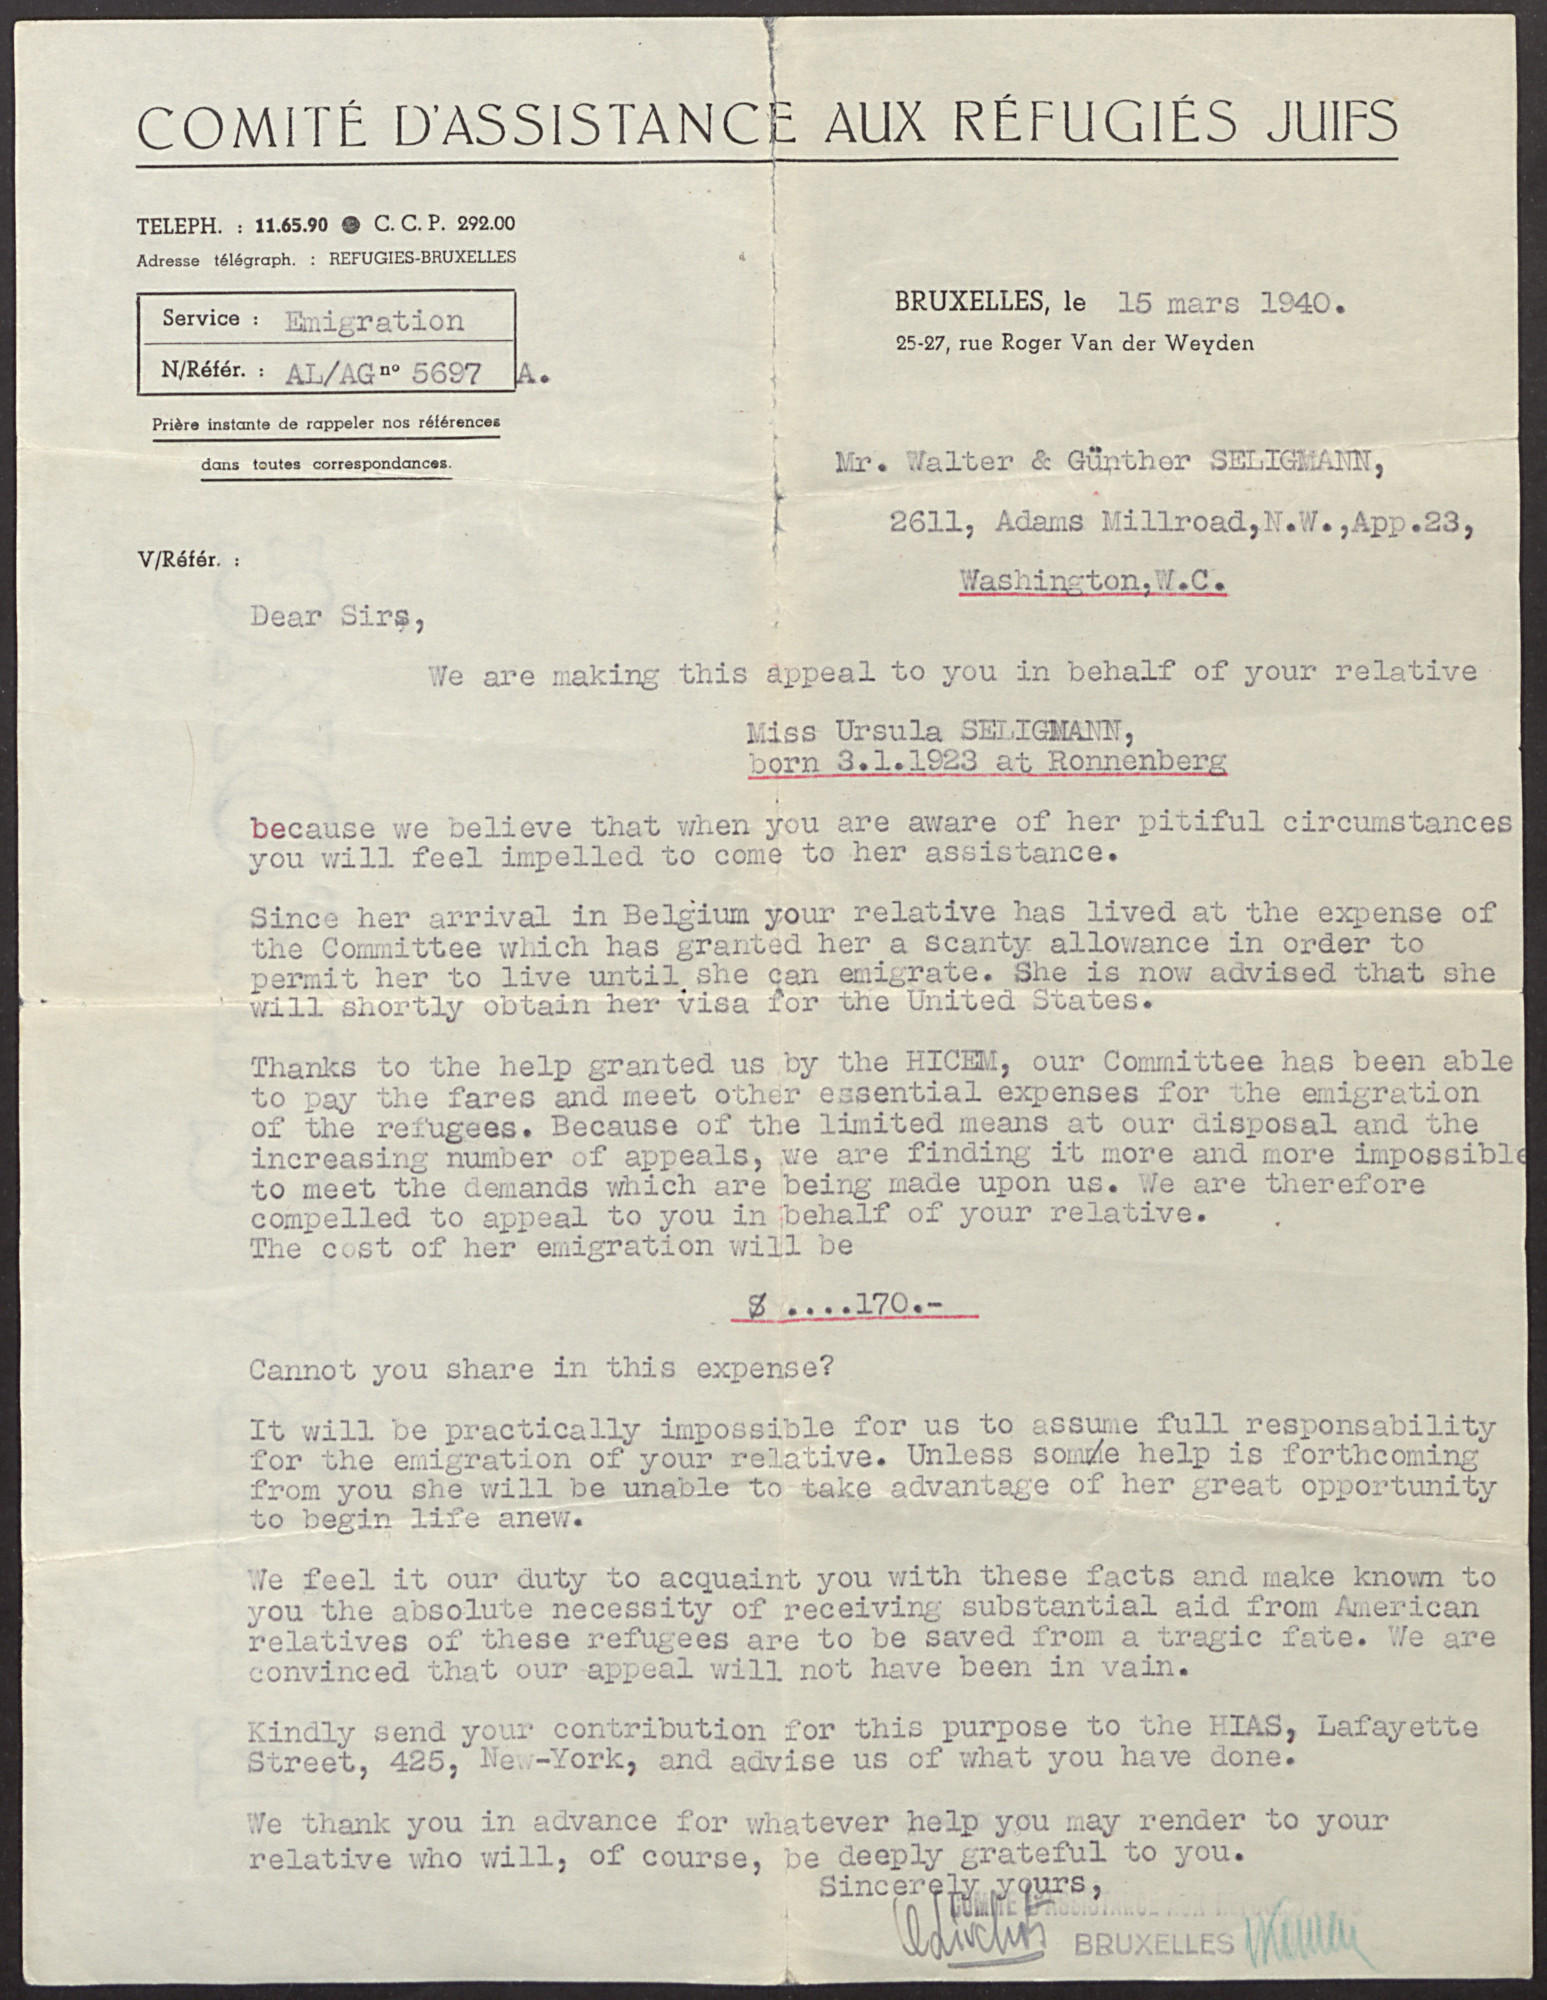 Letter from the Belgian Committee to Assist Jewish Refugees to Walter and Guenther Seligmann of Washington, D.C. on behalf of their relative, Ursula Seligmann.